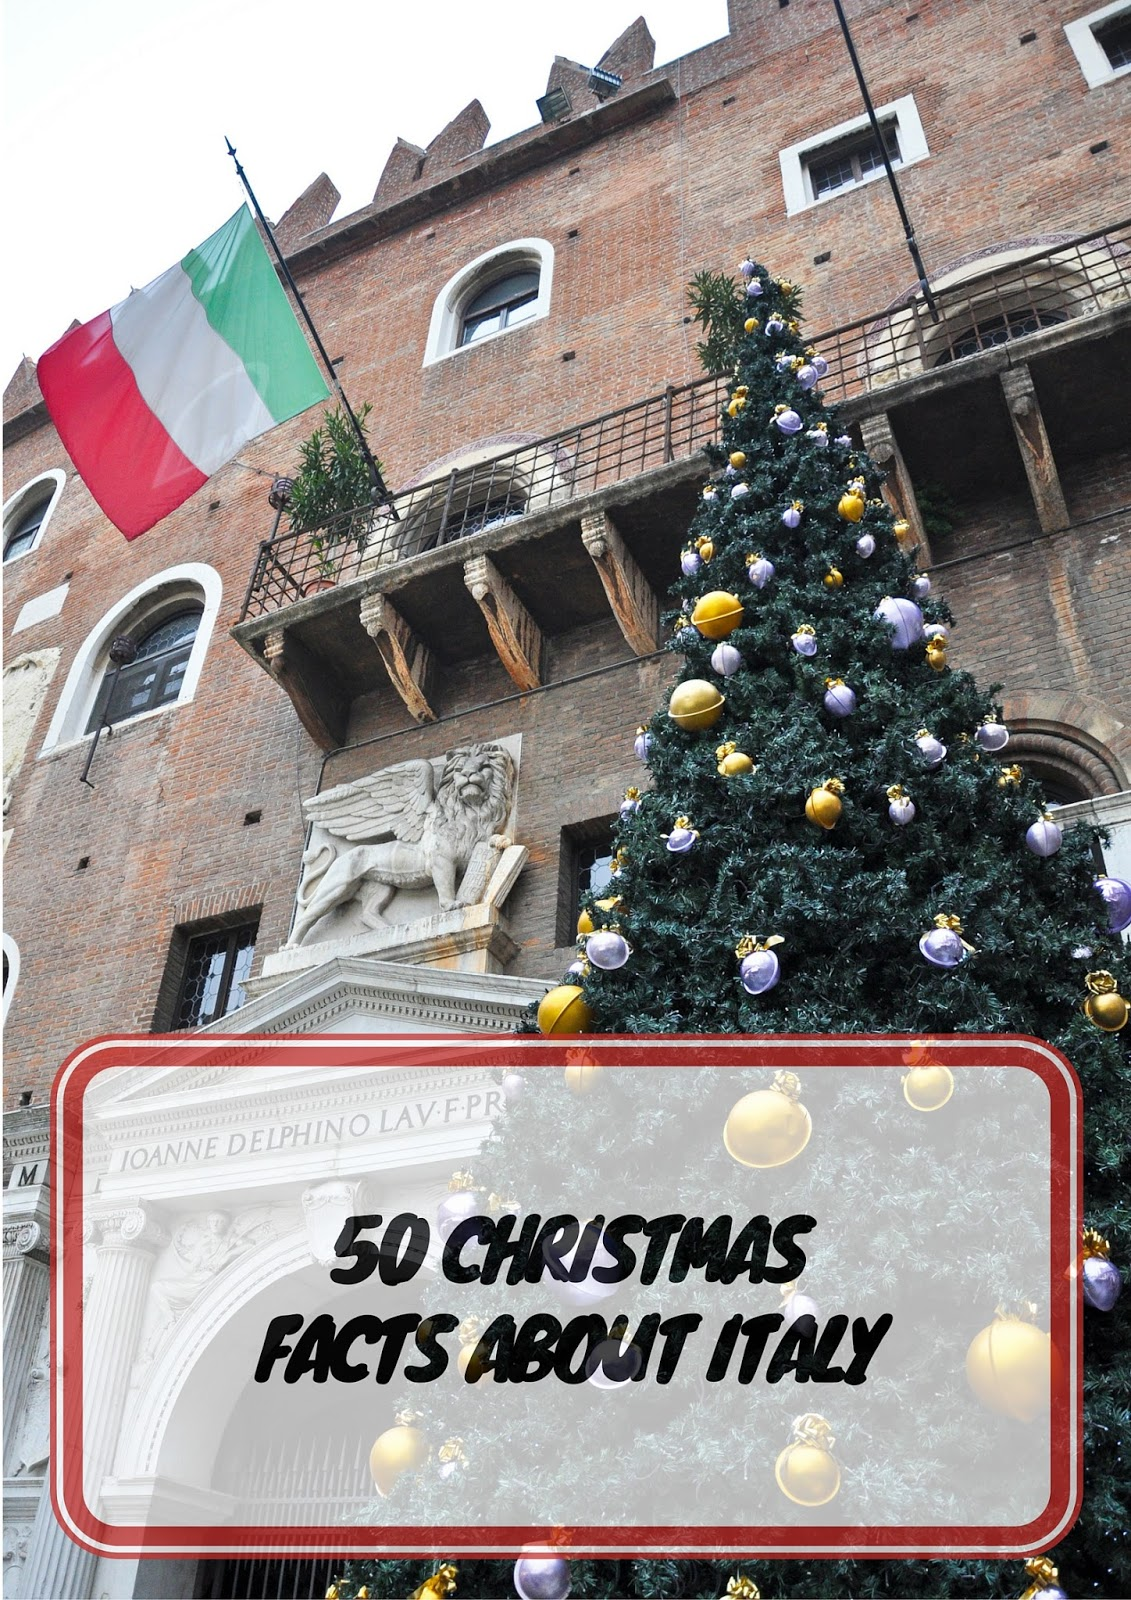 50 Christmas Facts About Italy - First Part